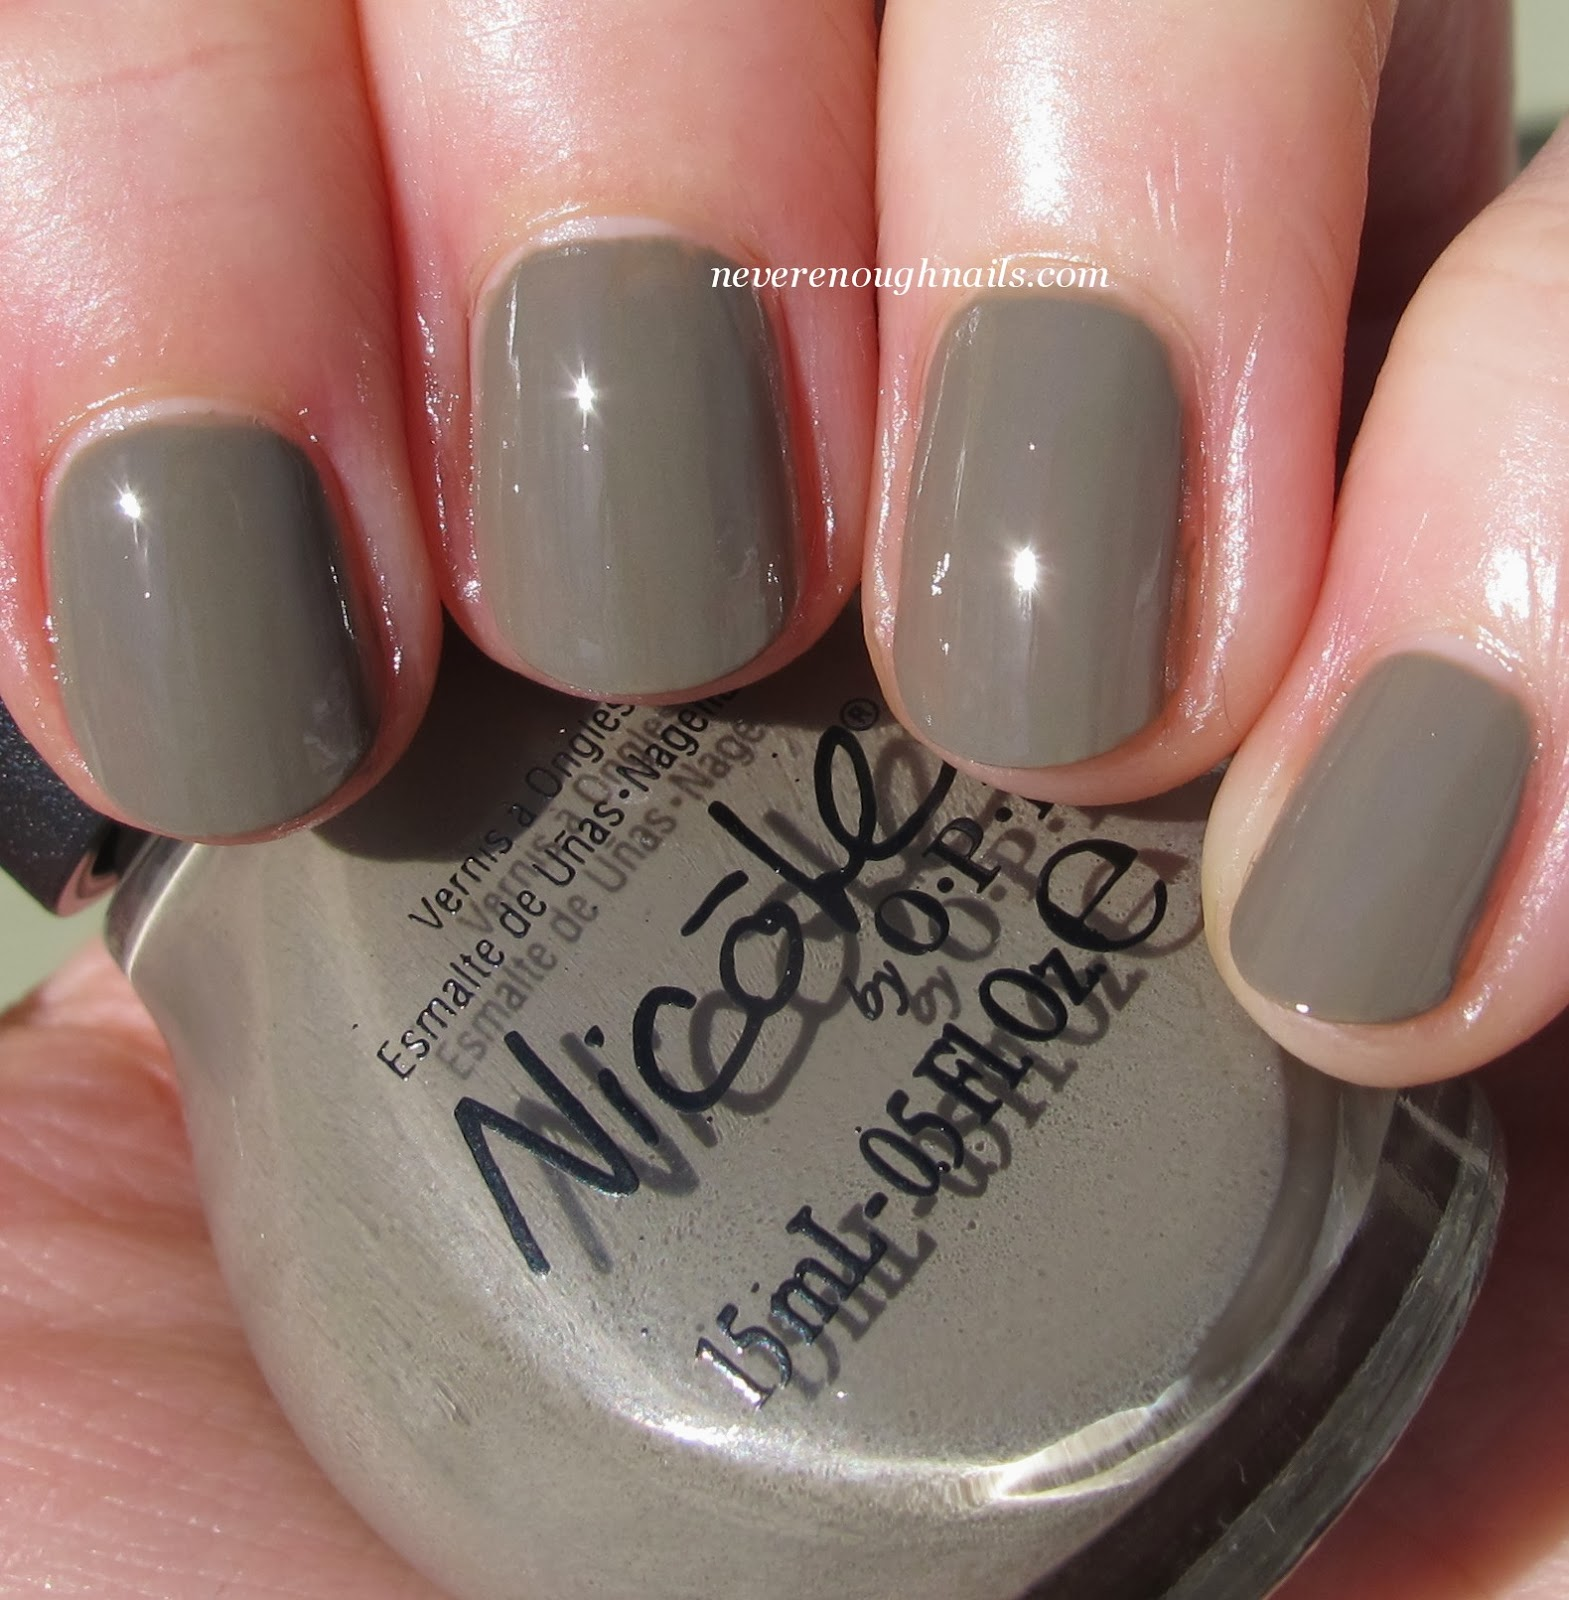 Never Enough Nails: New Nicole by OPI Lacquers- the Neutrals